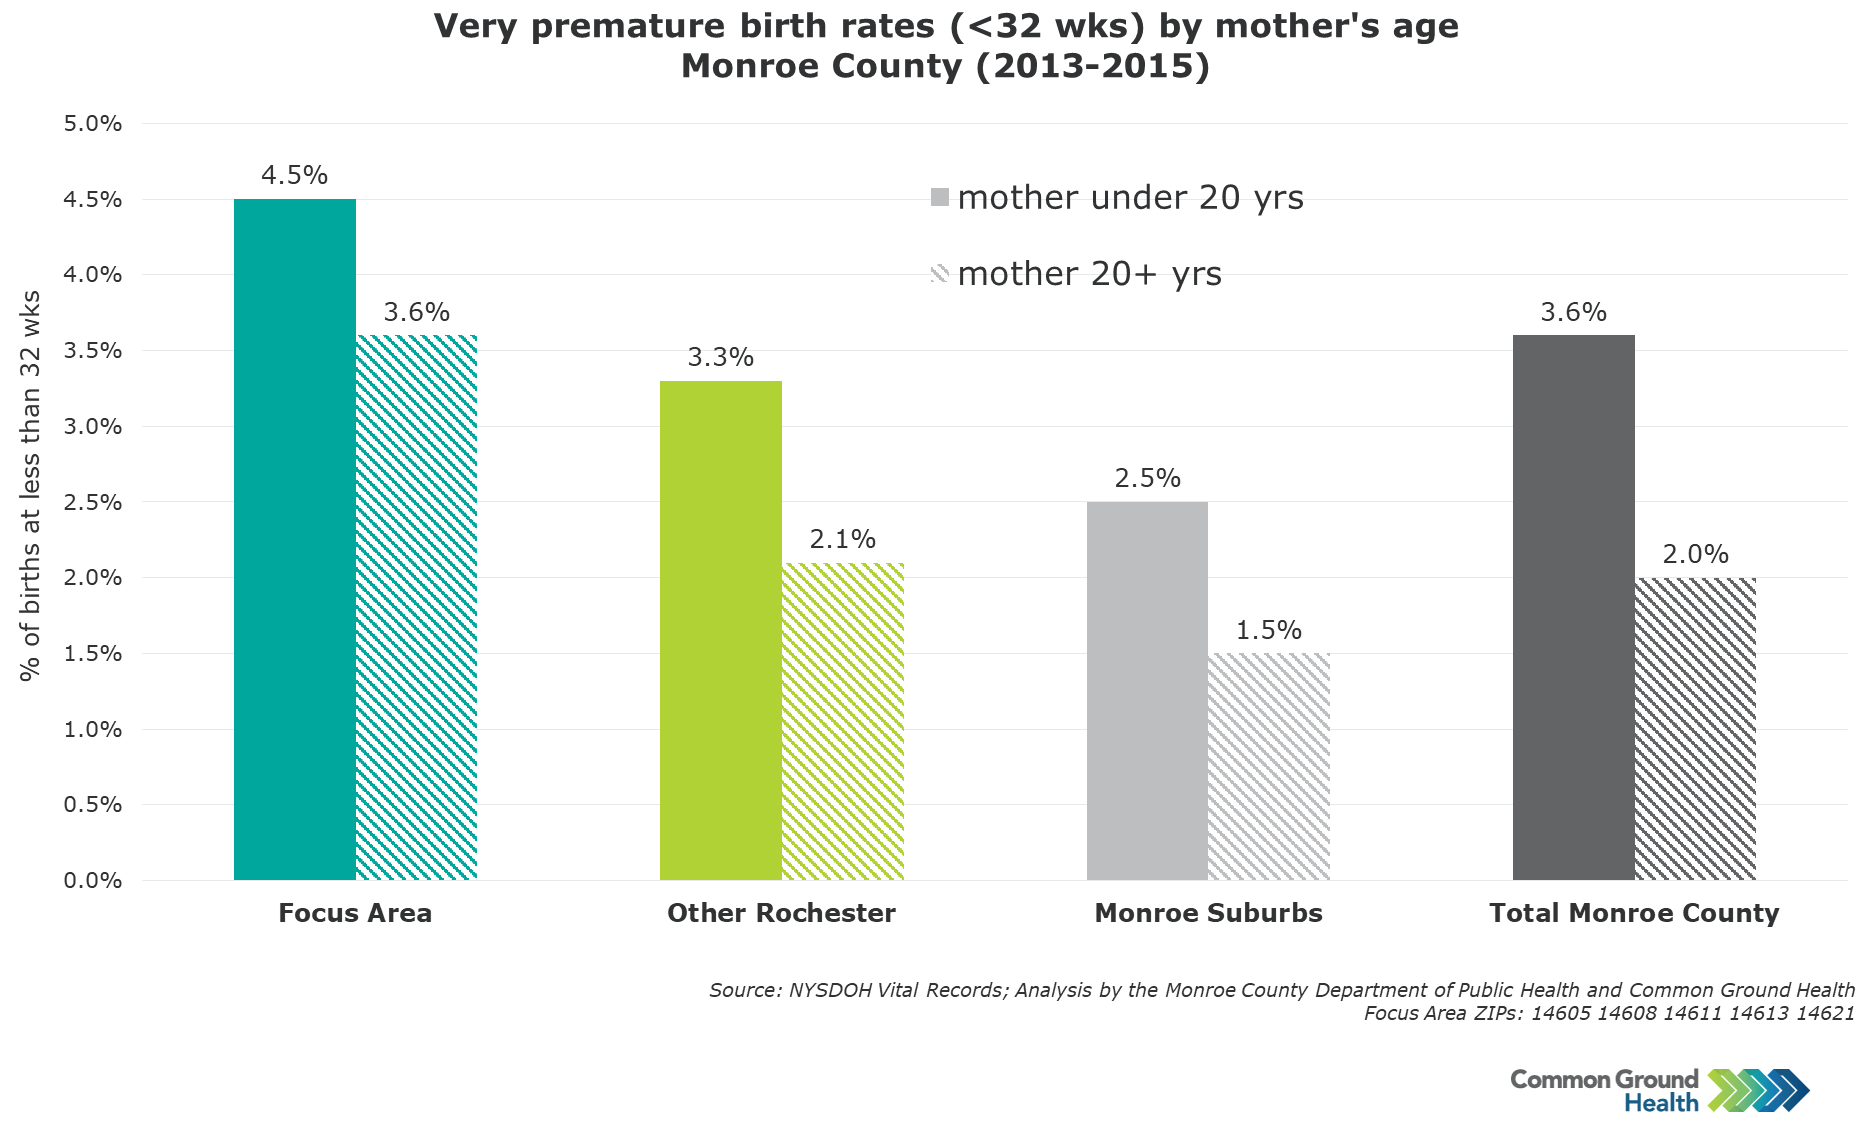 Very Premature Birth Rates (<32 weeks) by Mother's Age